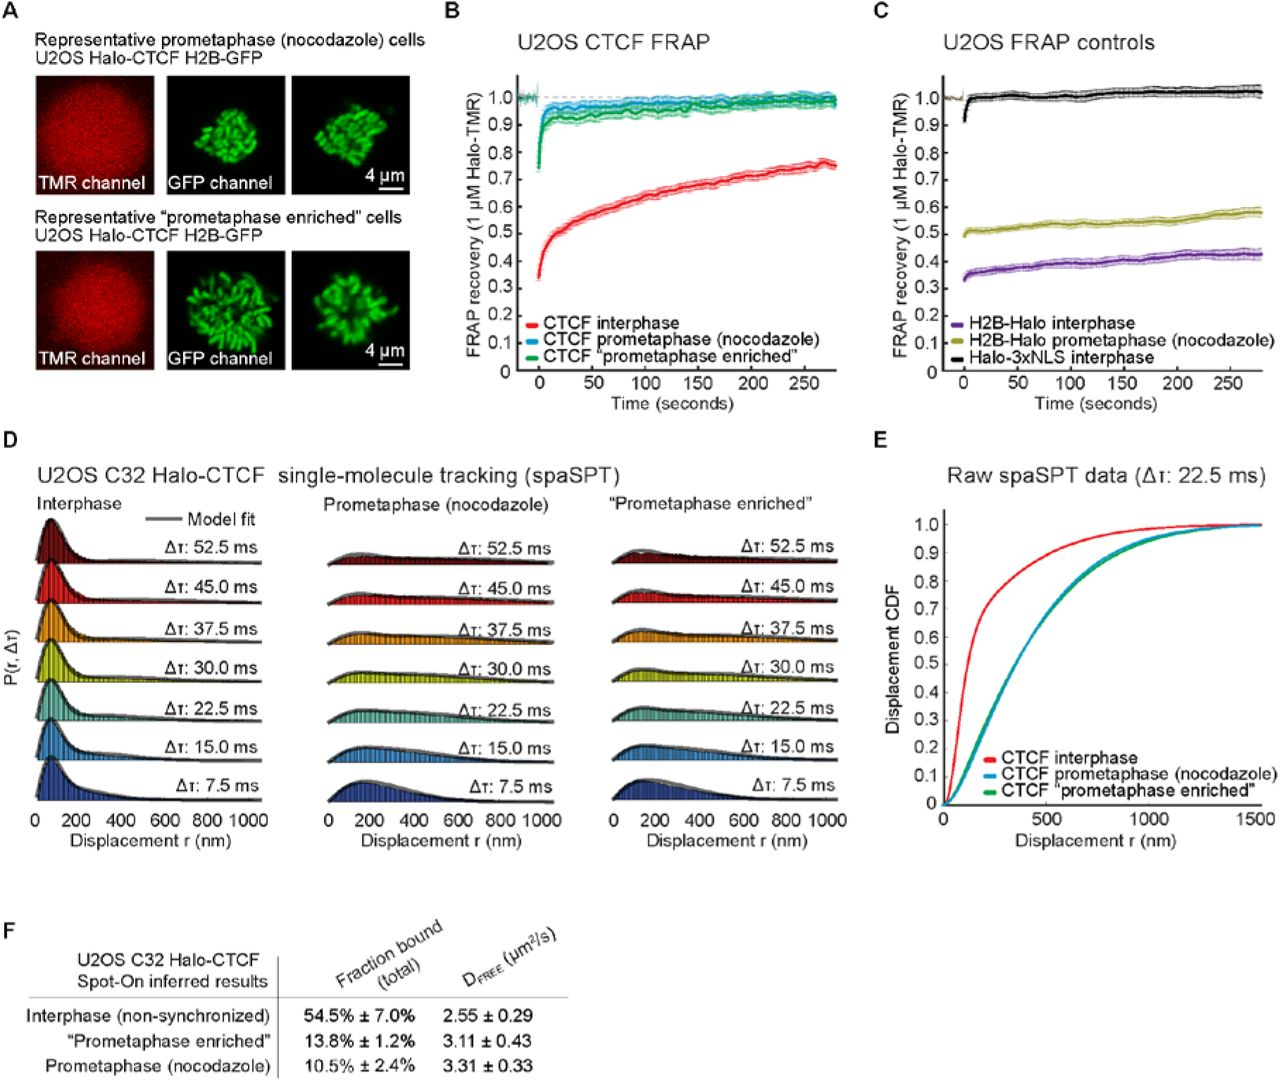 CTCF sites display cell cycle dependent dynamics in factor